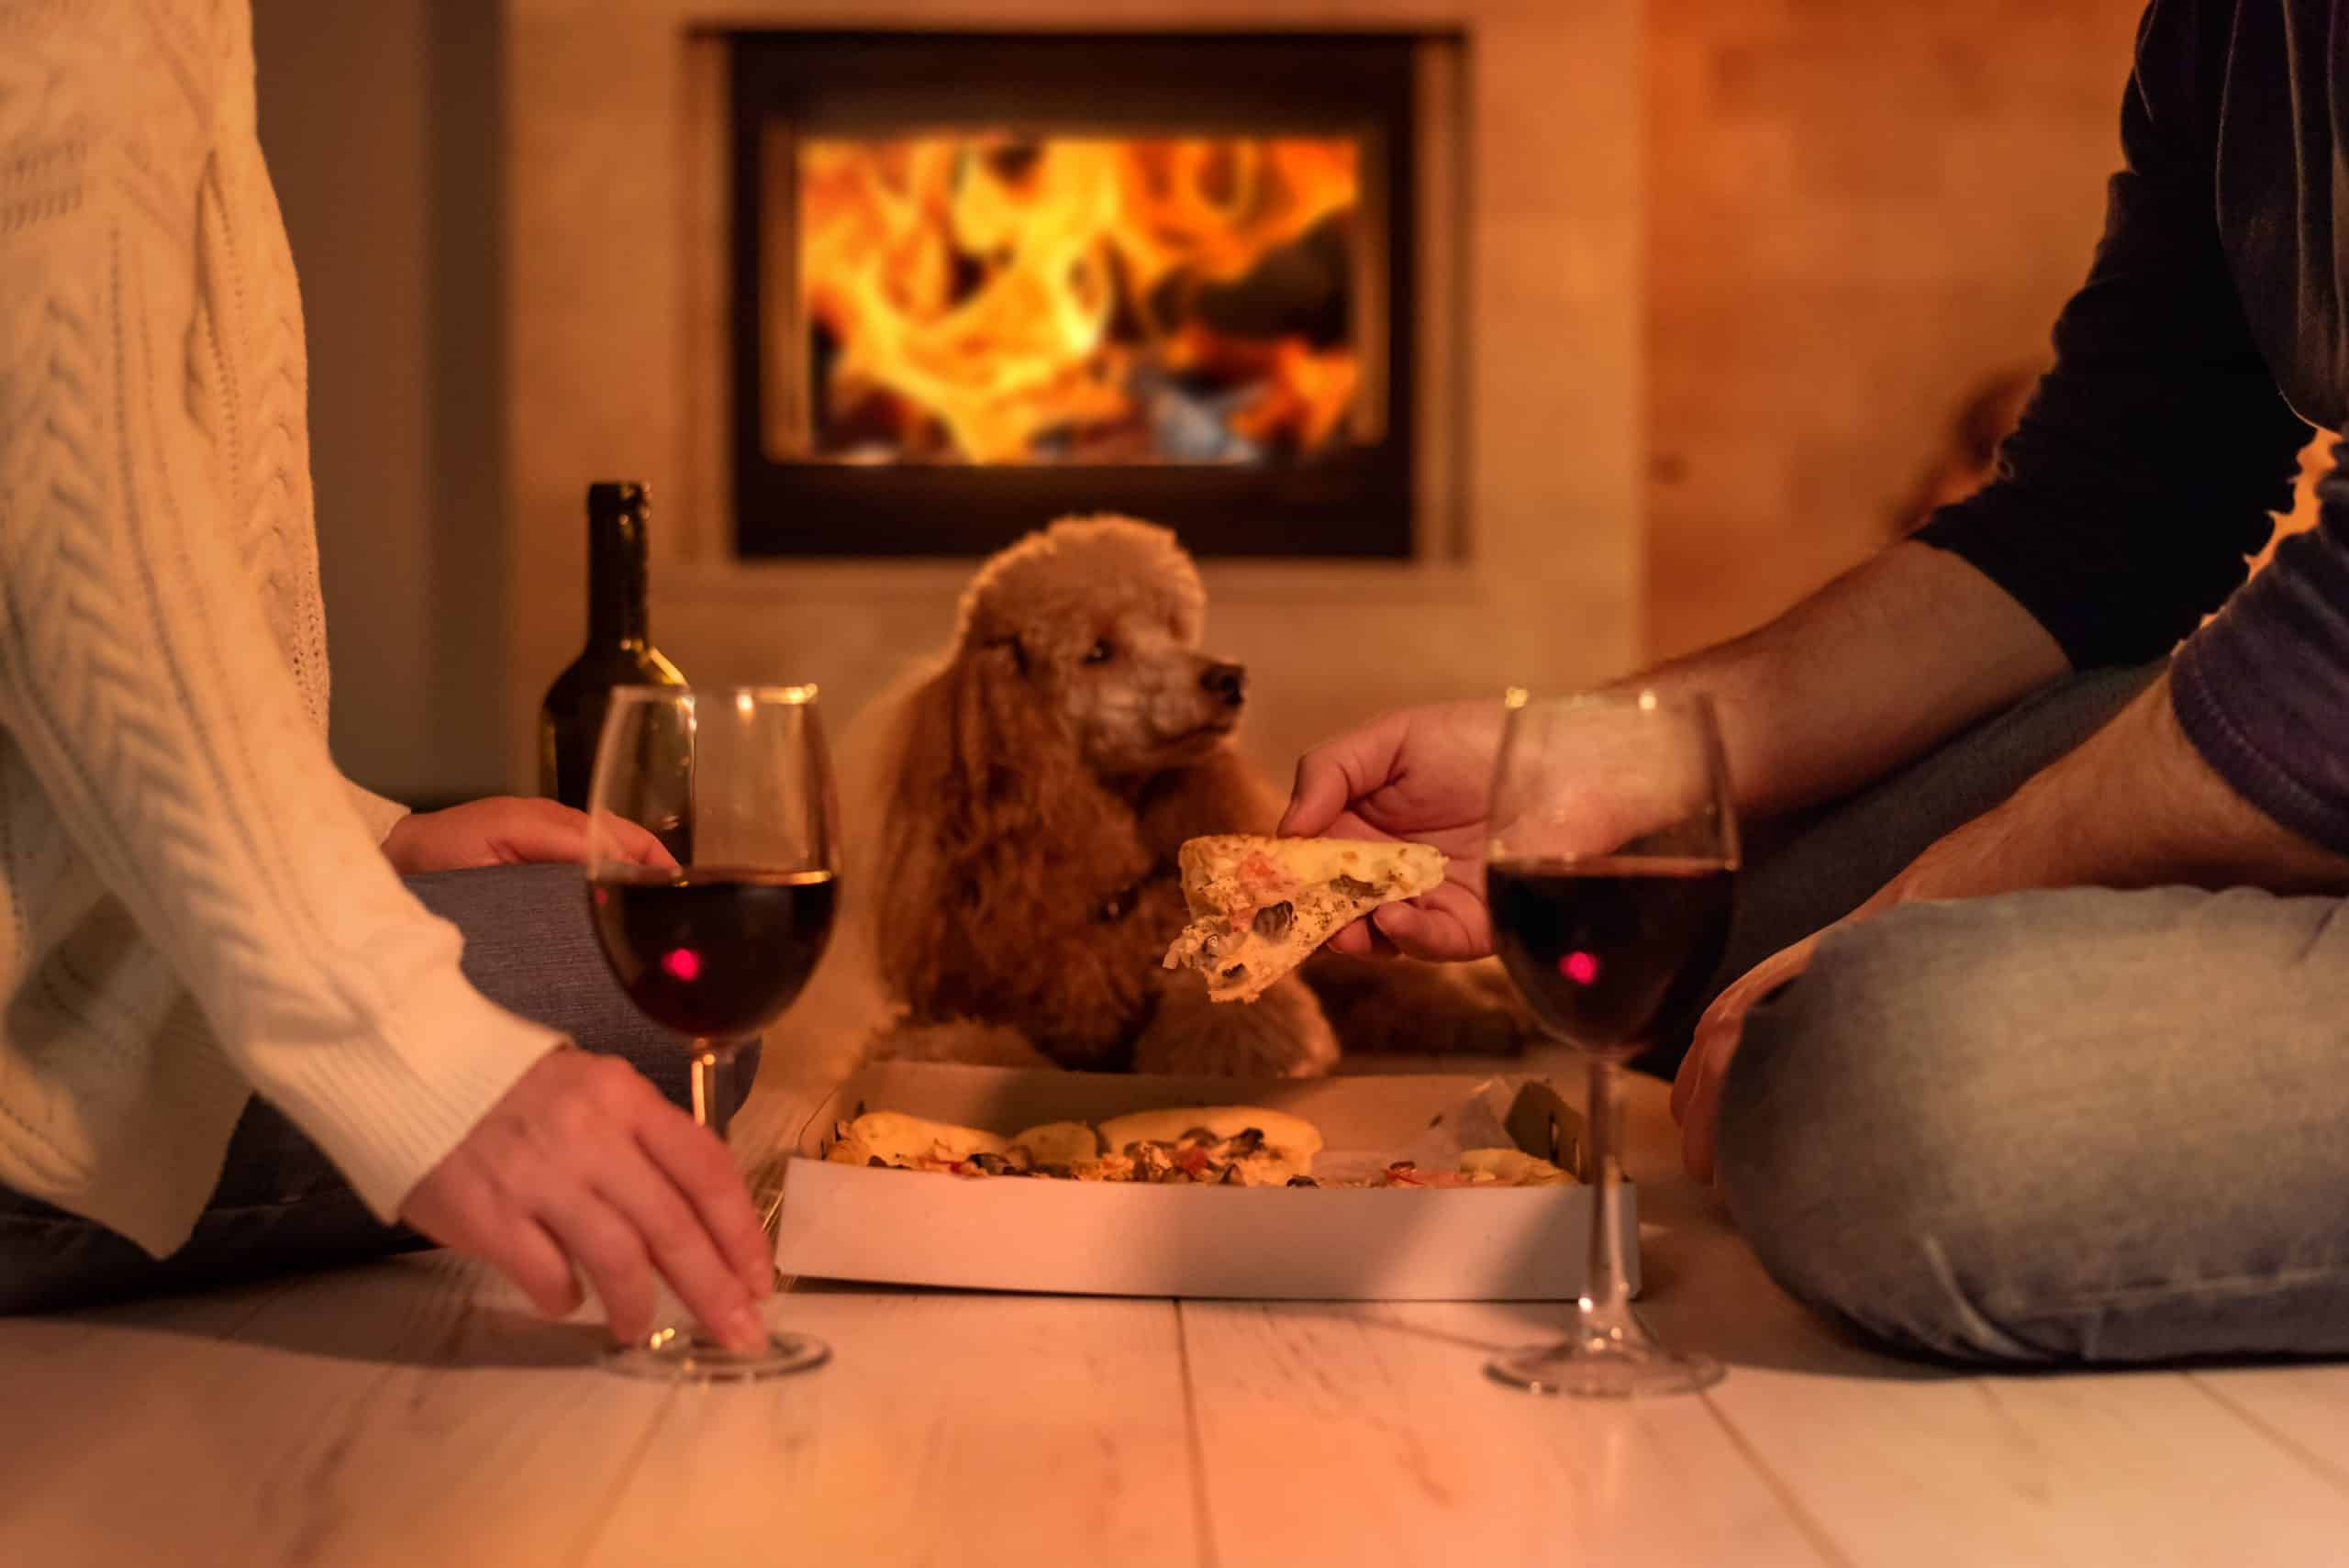 Poodle watches owners drink wine and eat pizza. Don't let your dog drink wine. Limited studies suggest that wine is just as toxic to dogs as grapes are.